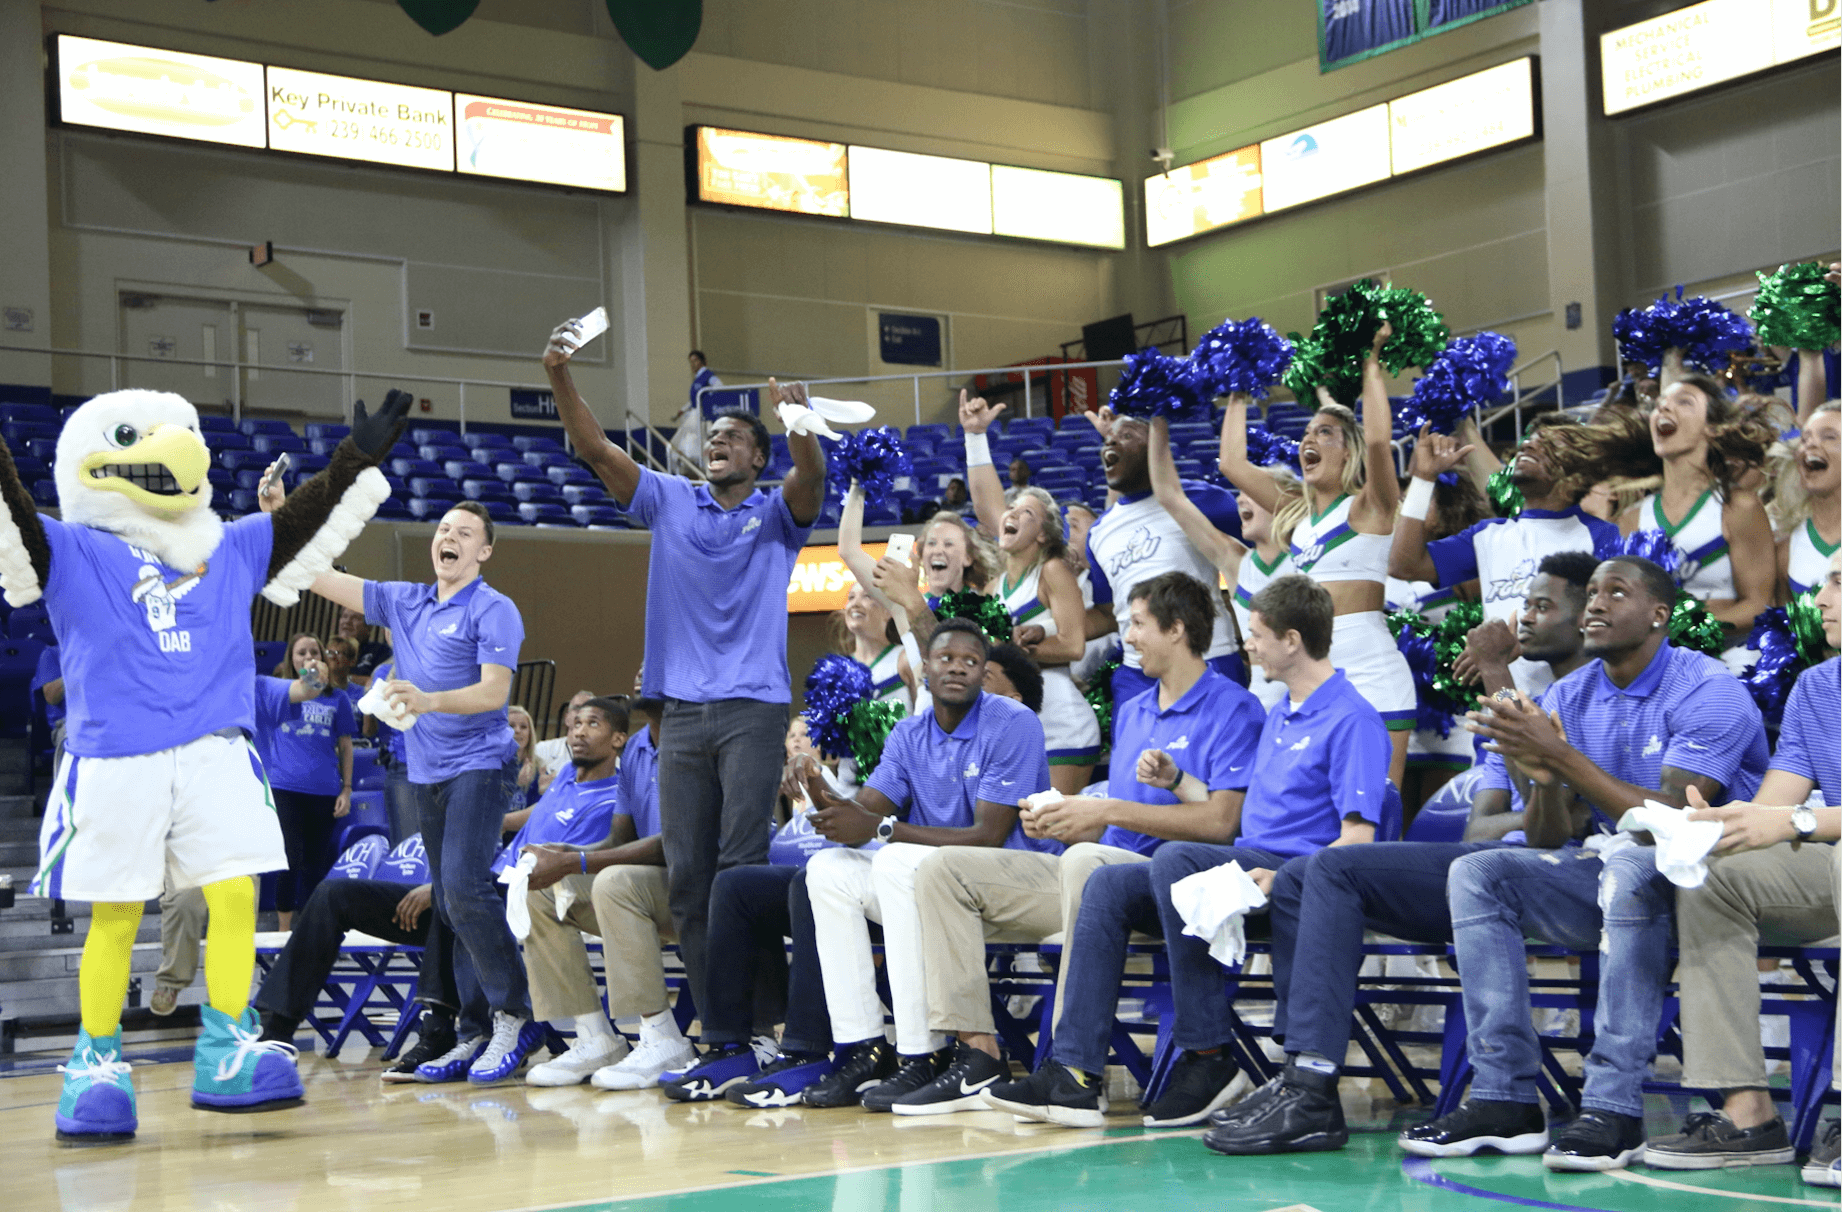 FGCU set to face Fairleigh Dickinson University in first round of NCAA play